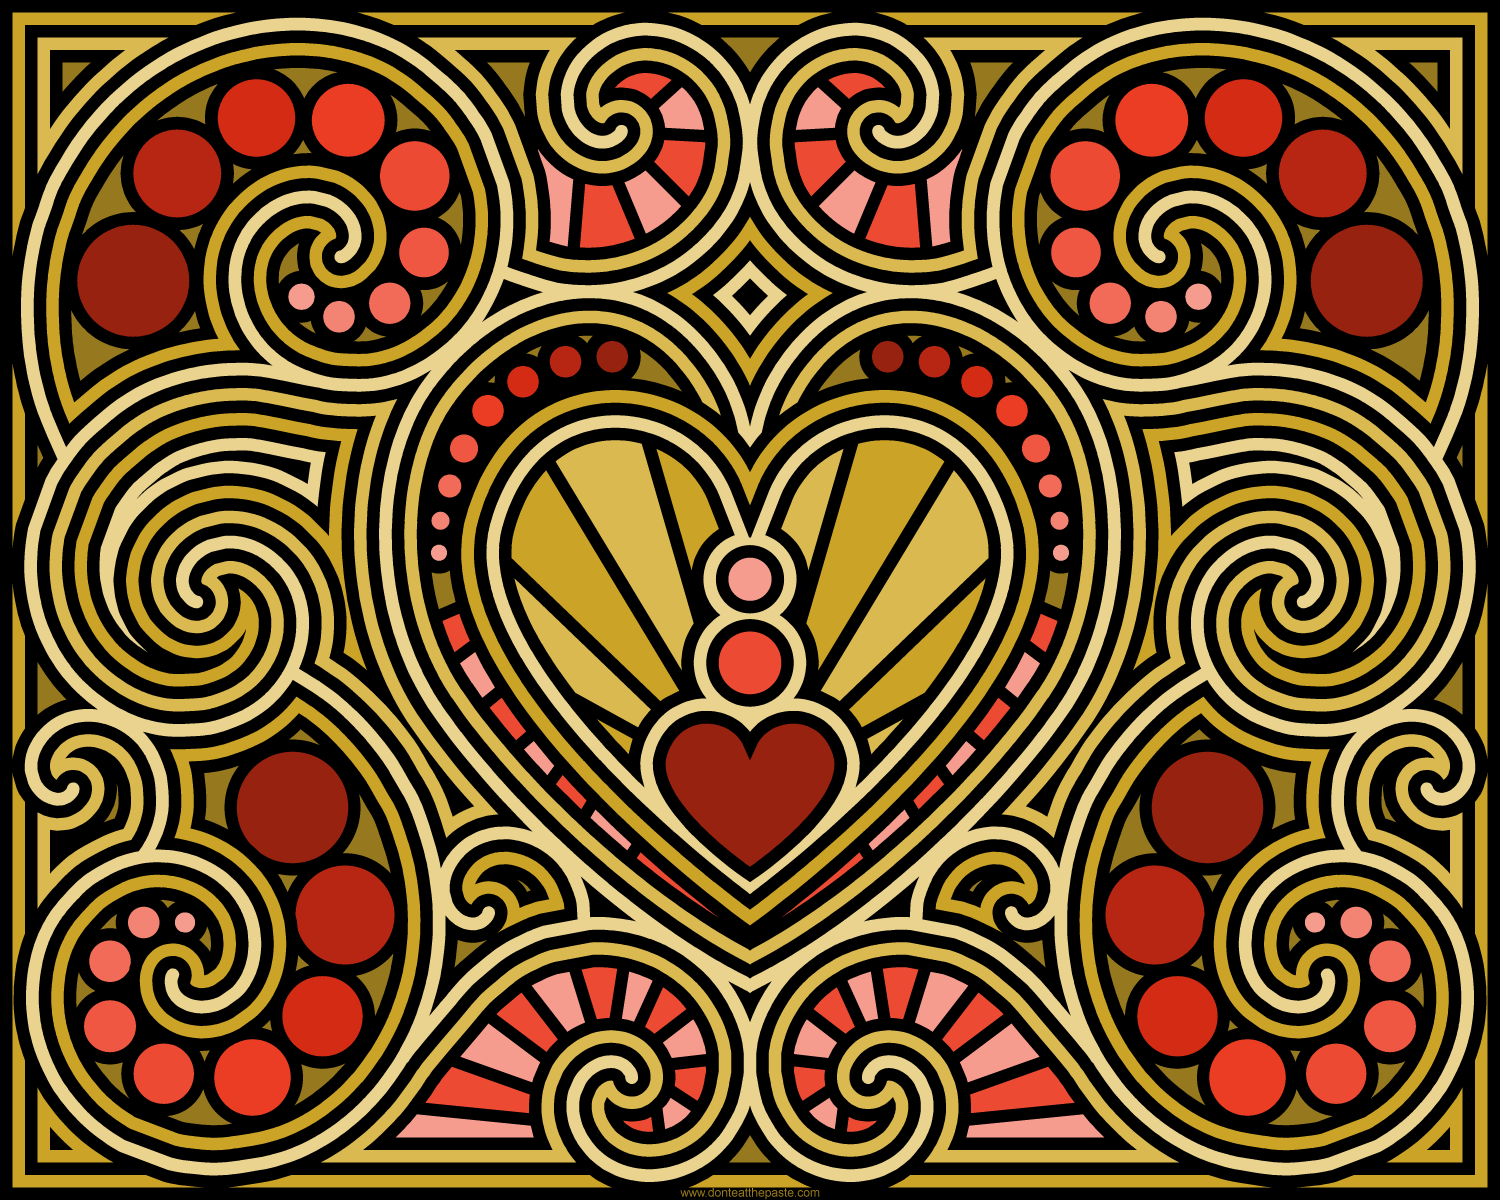 Swirly Heart Coloring Page Blank Available For Free